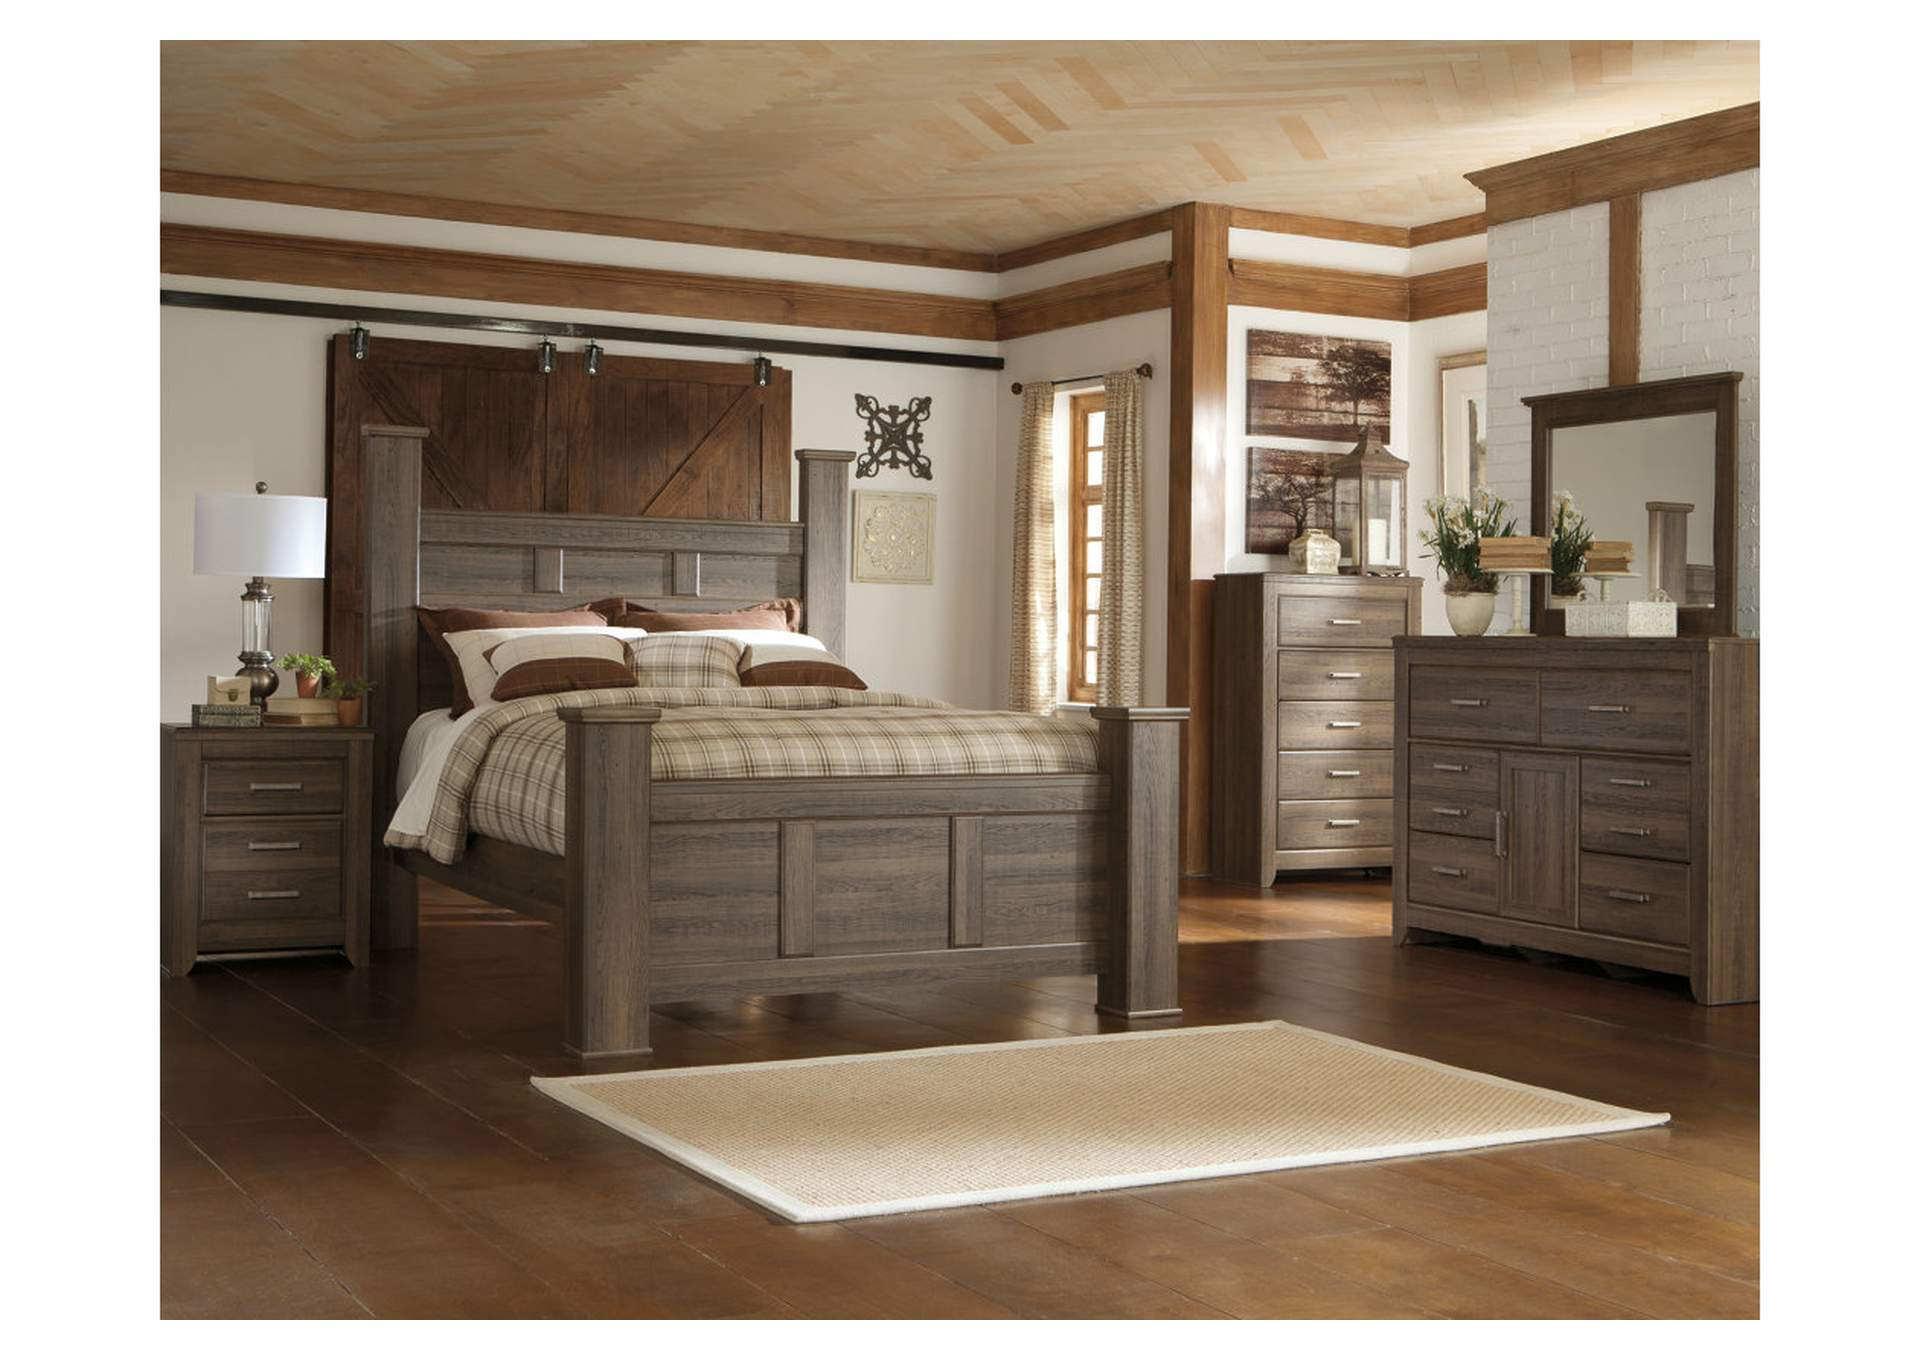 Exceptional Juararo Queen Poster Bed W/Dresser U0026 Mirror